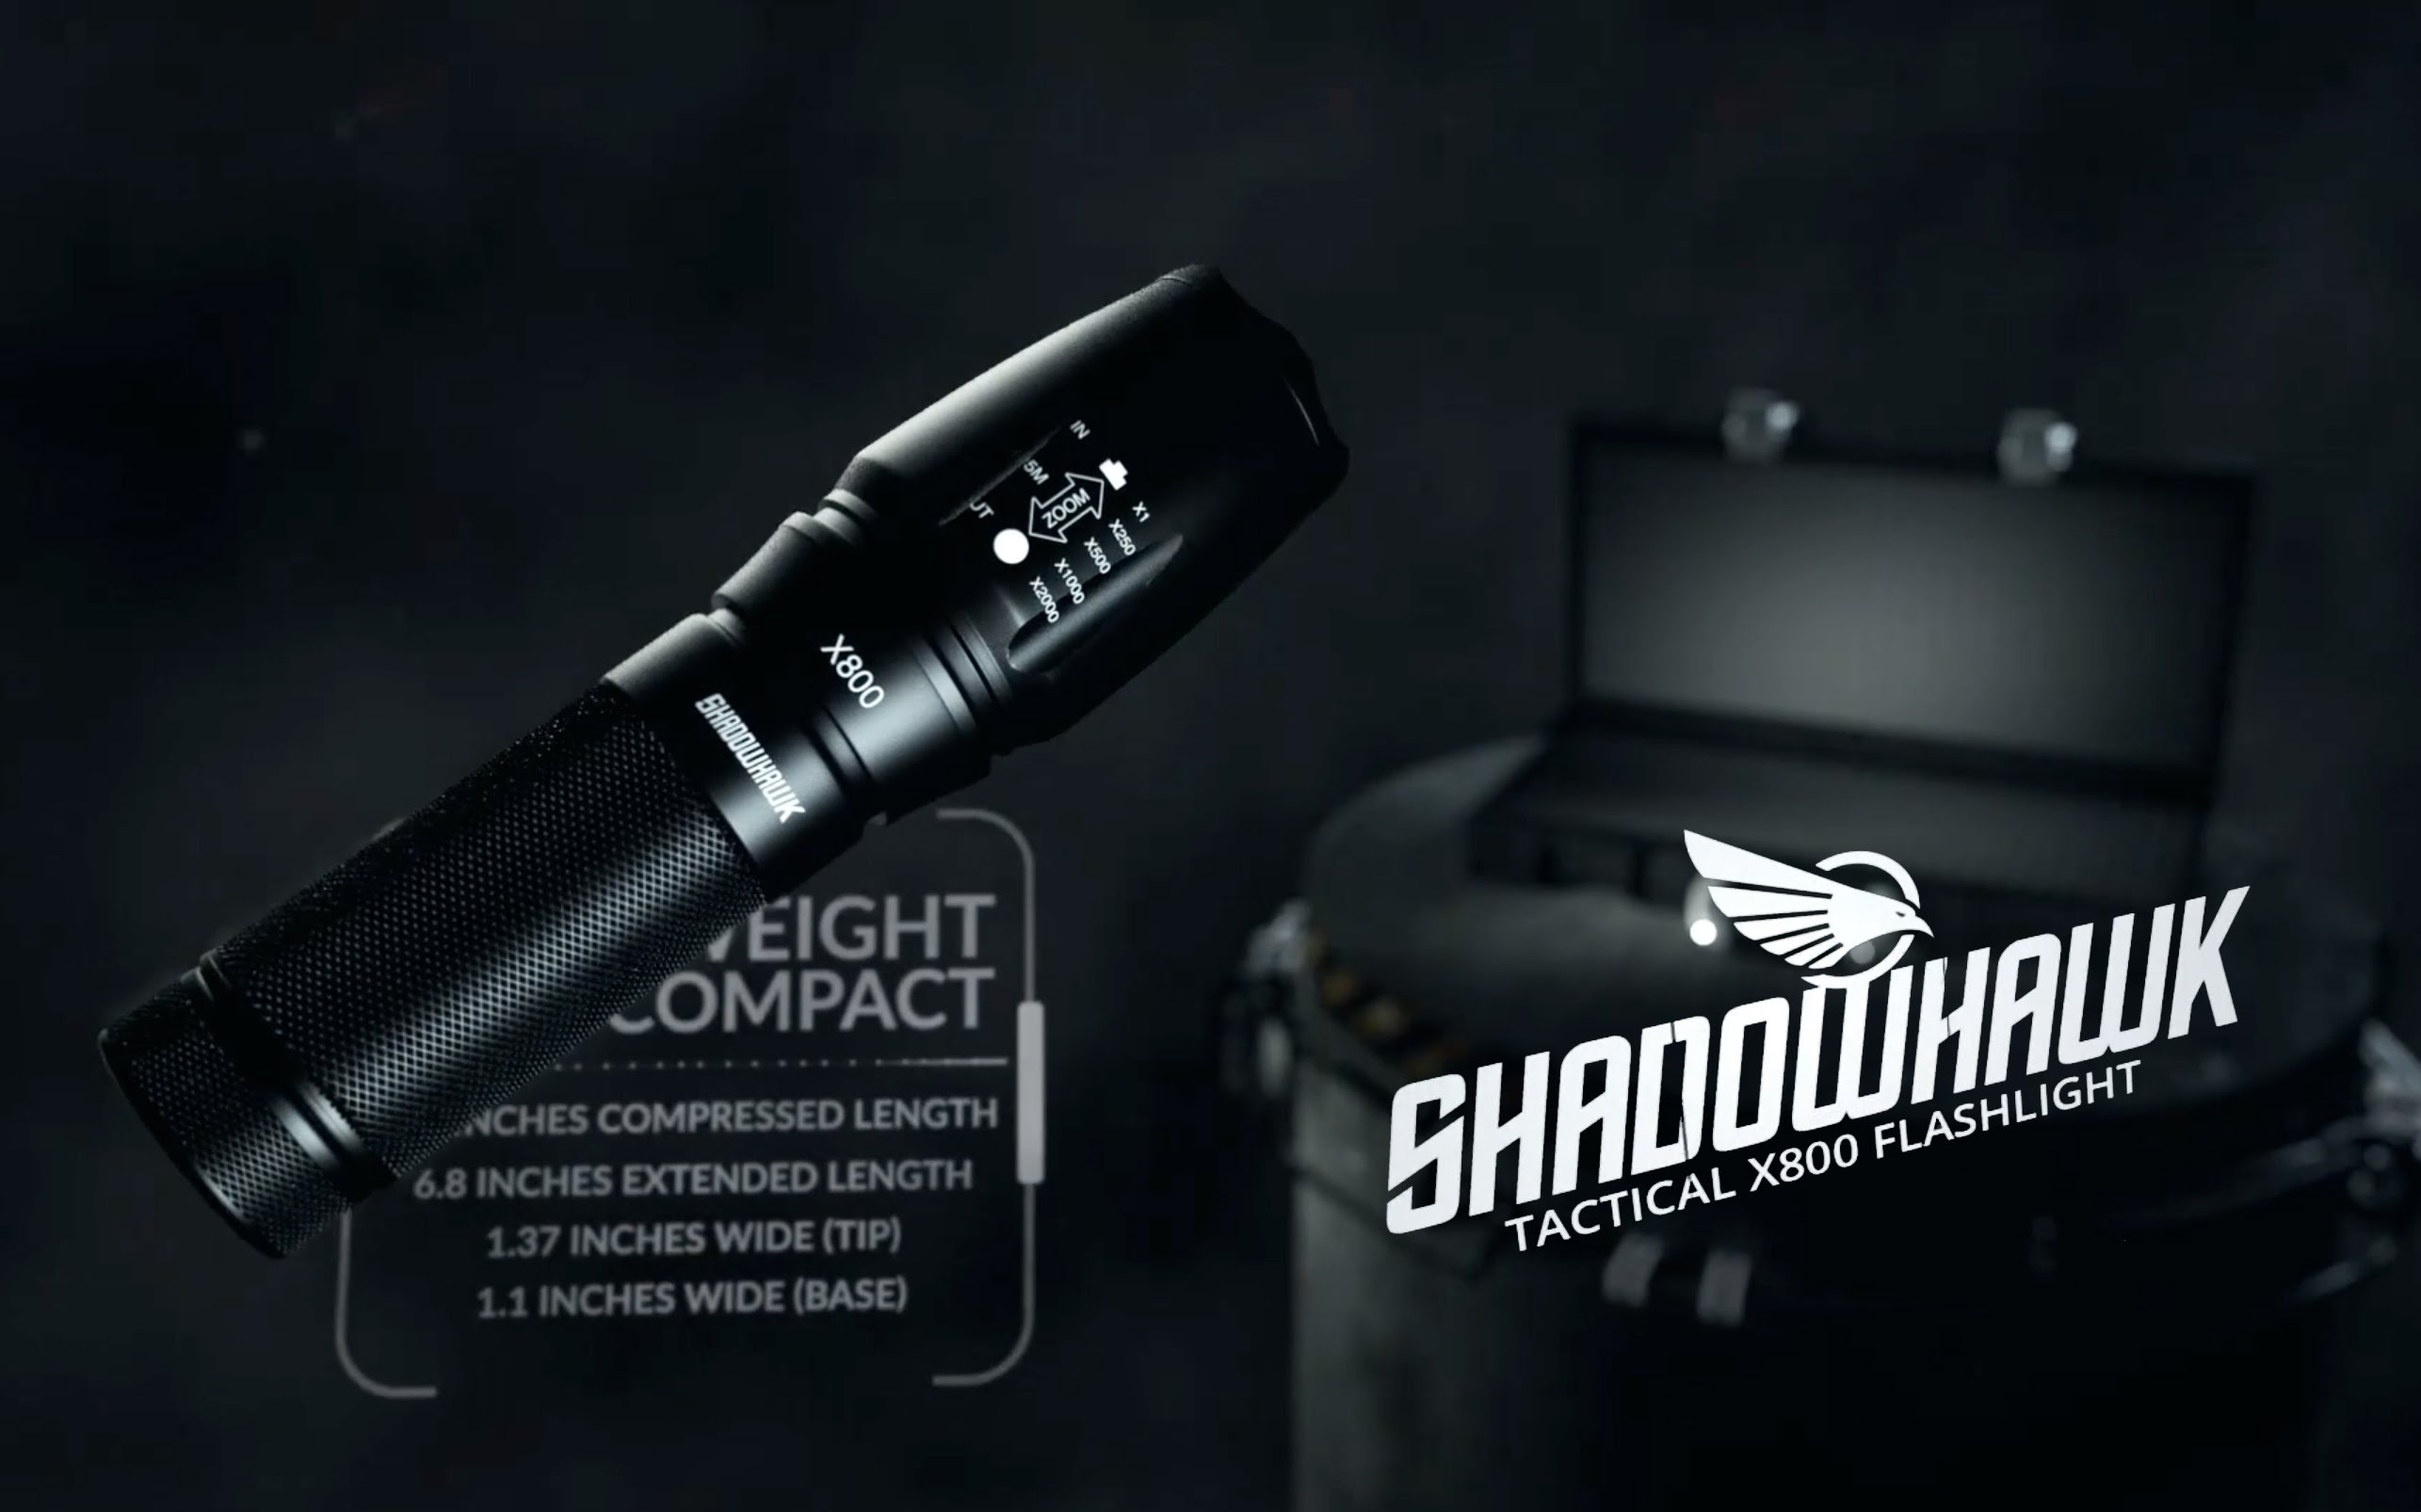 http://www.stadtbett.com/shadowhawk-flashlights/